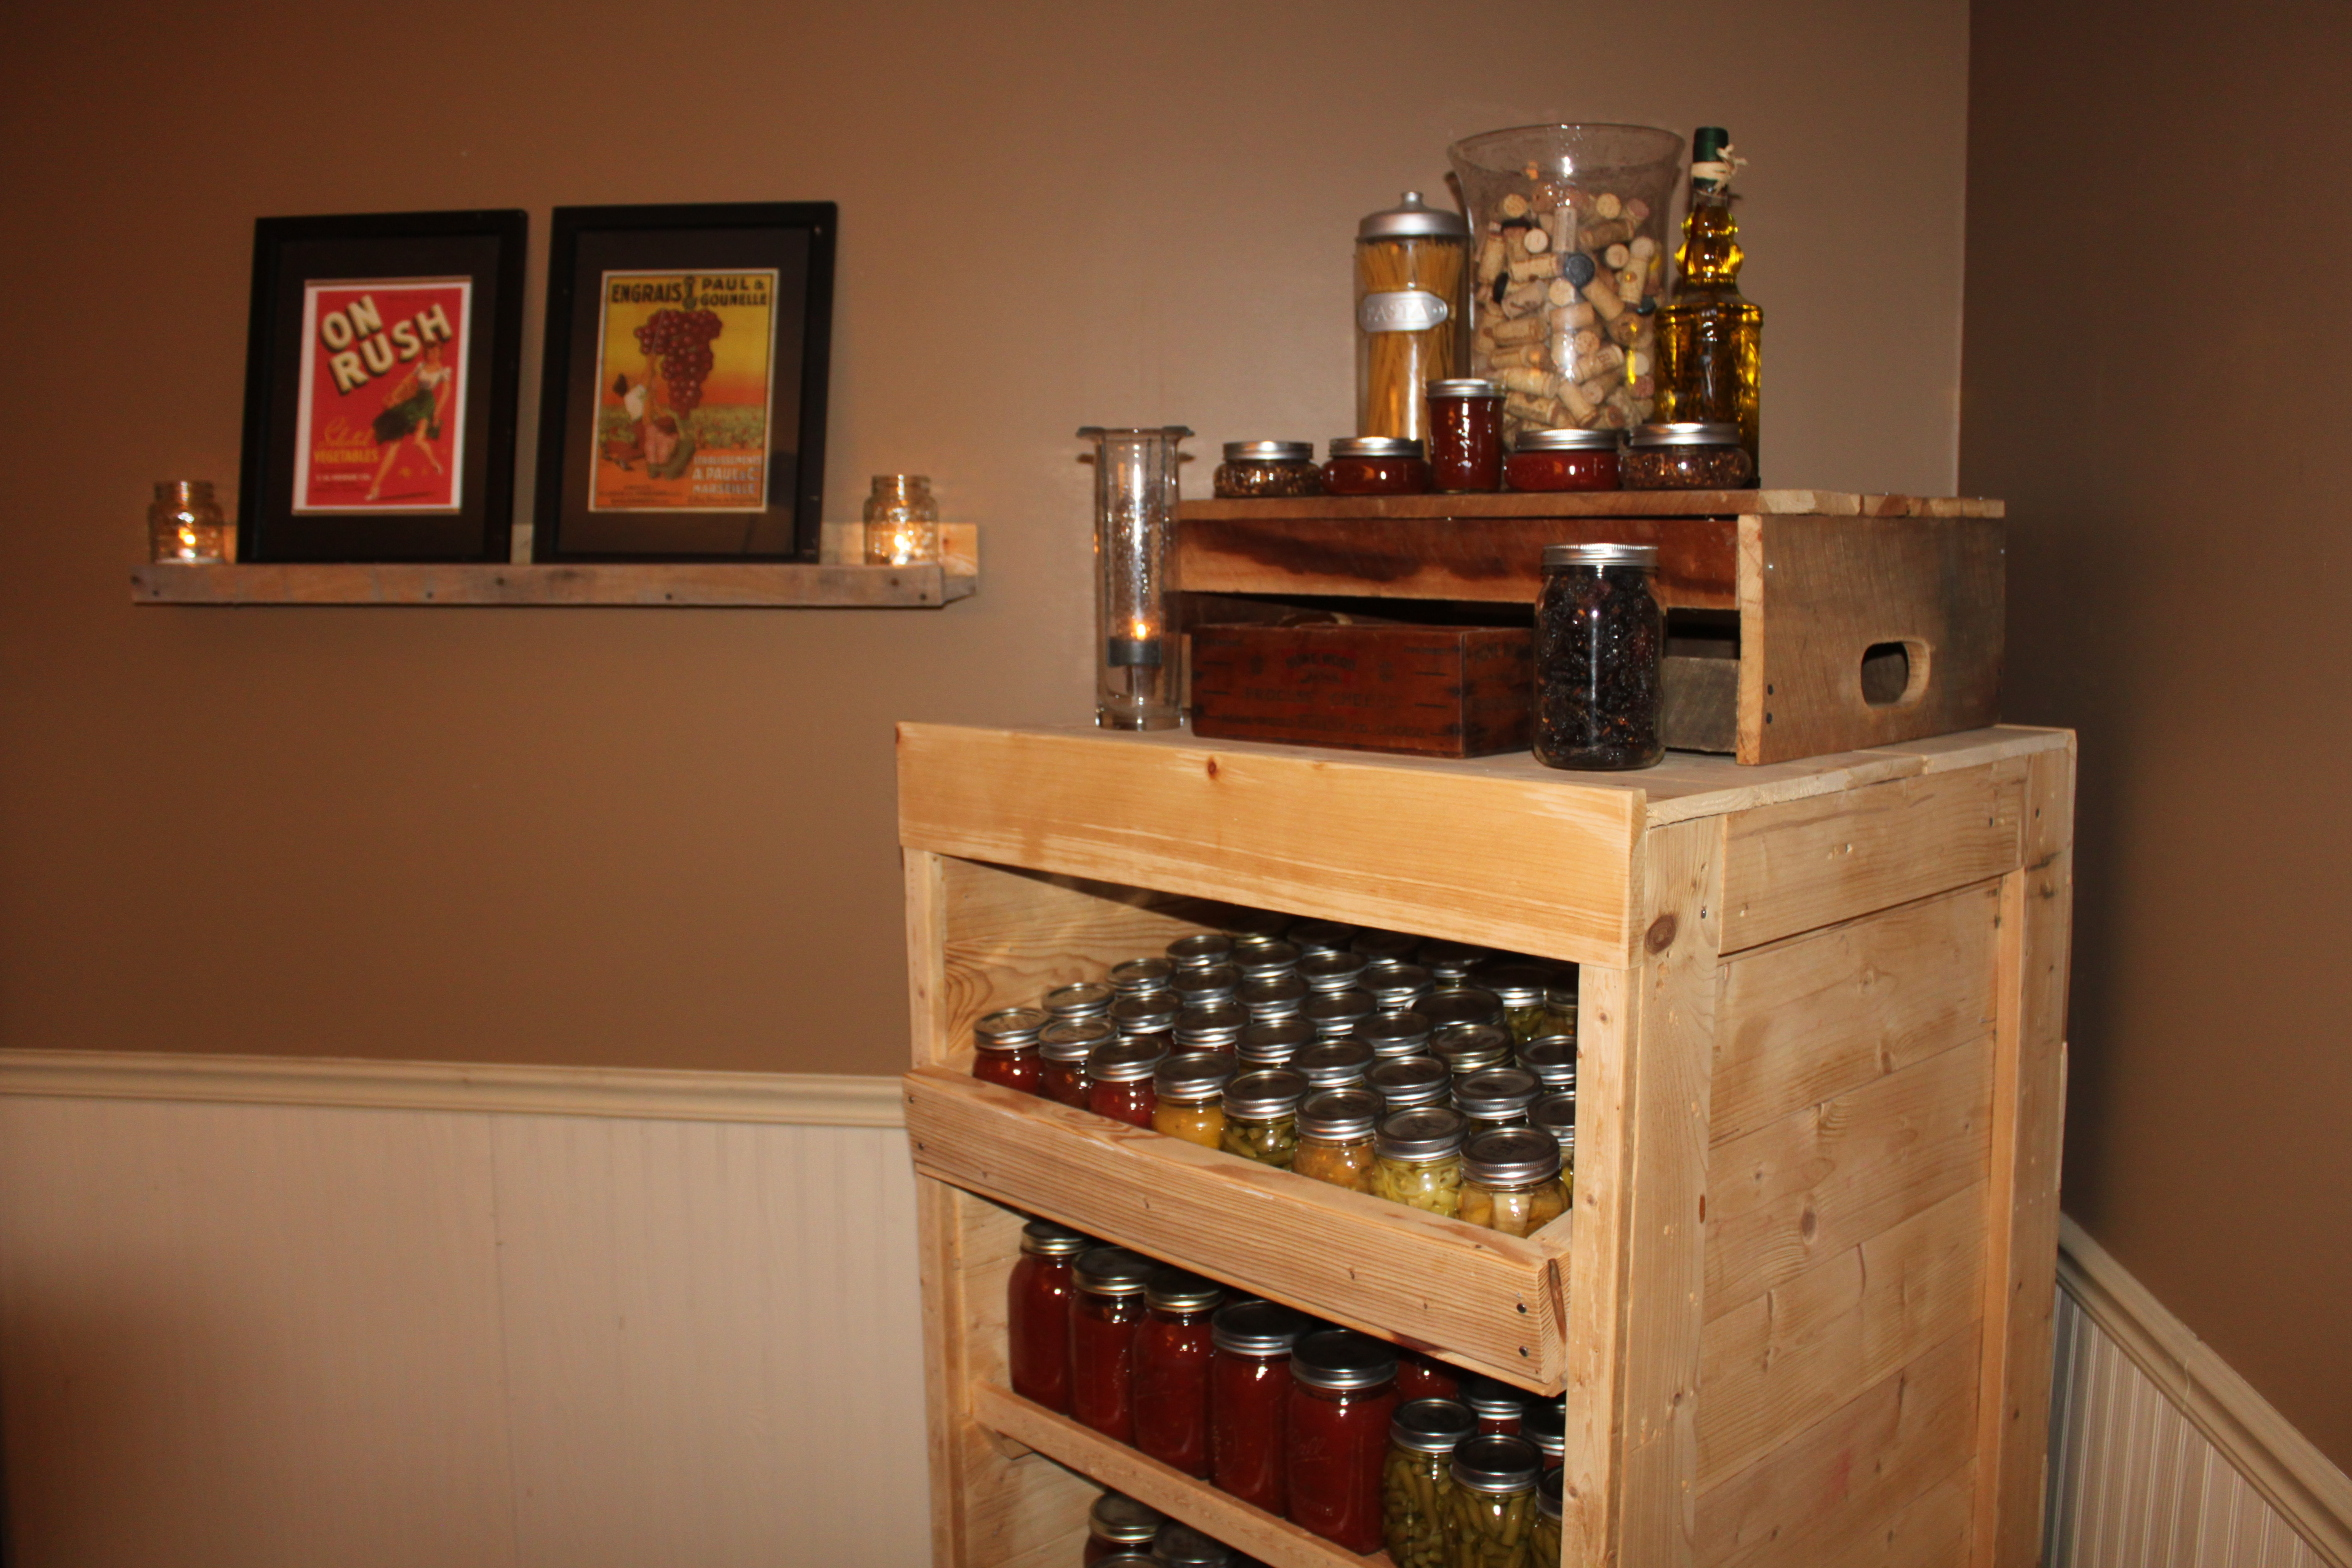 pallet furniture projects. VIEW IN GALLERY Canning Pantry Cupboard Built From Pallets Pallet Furniture Projects I